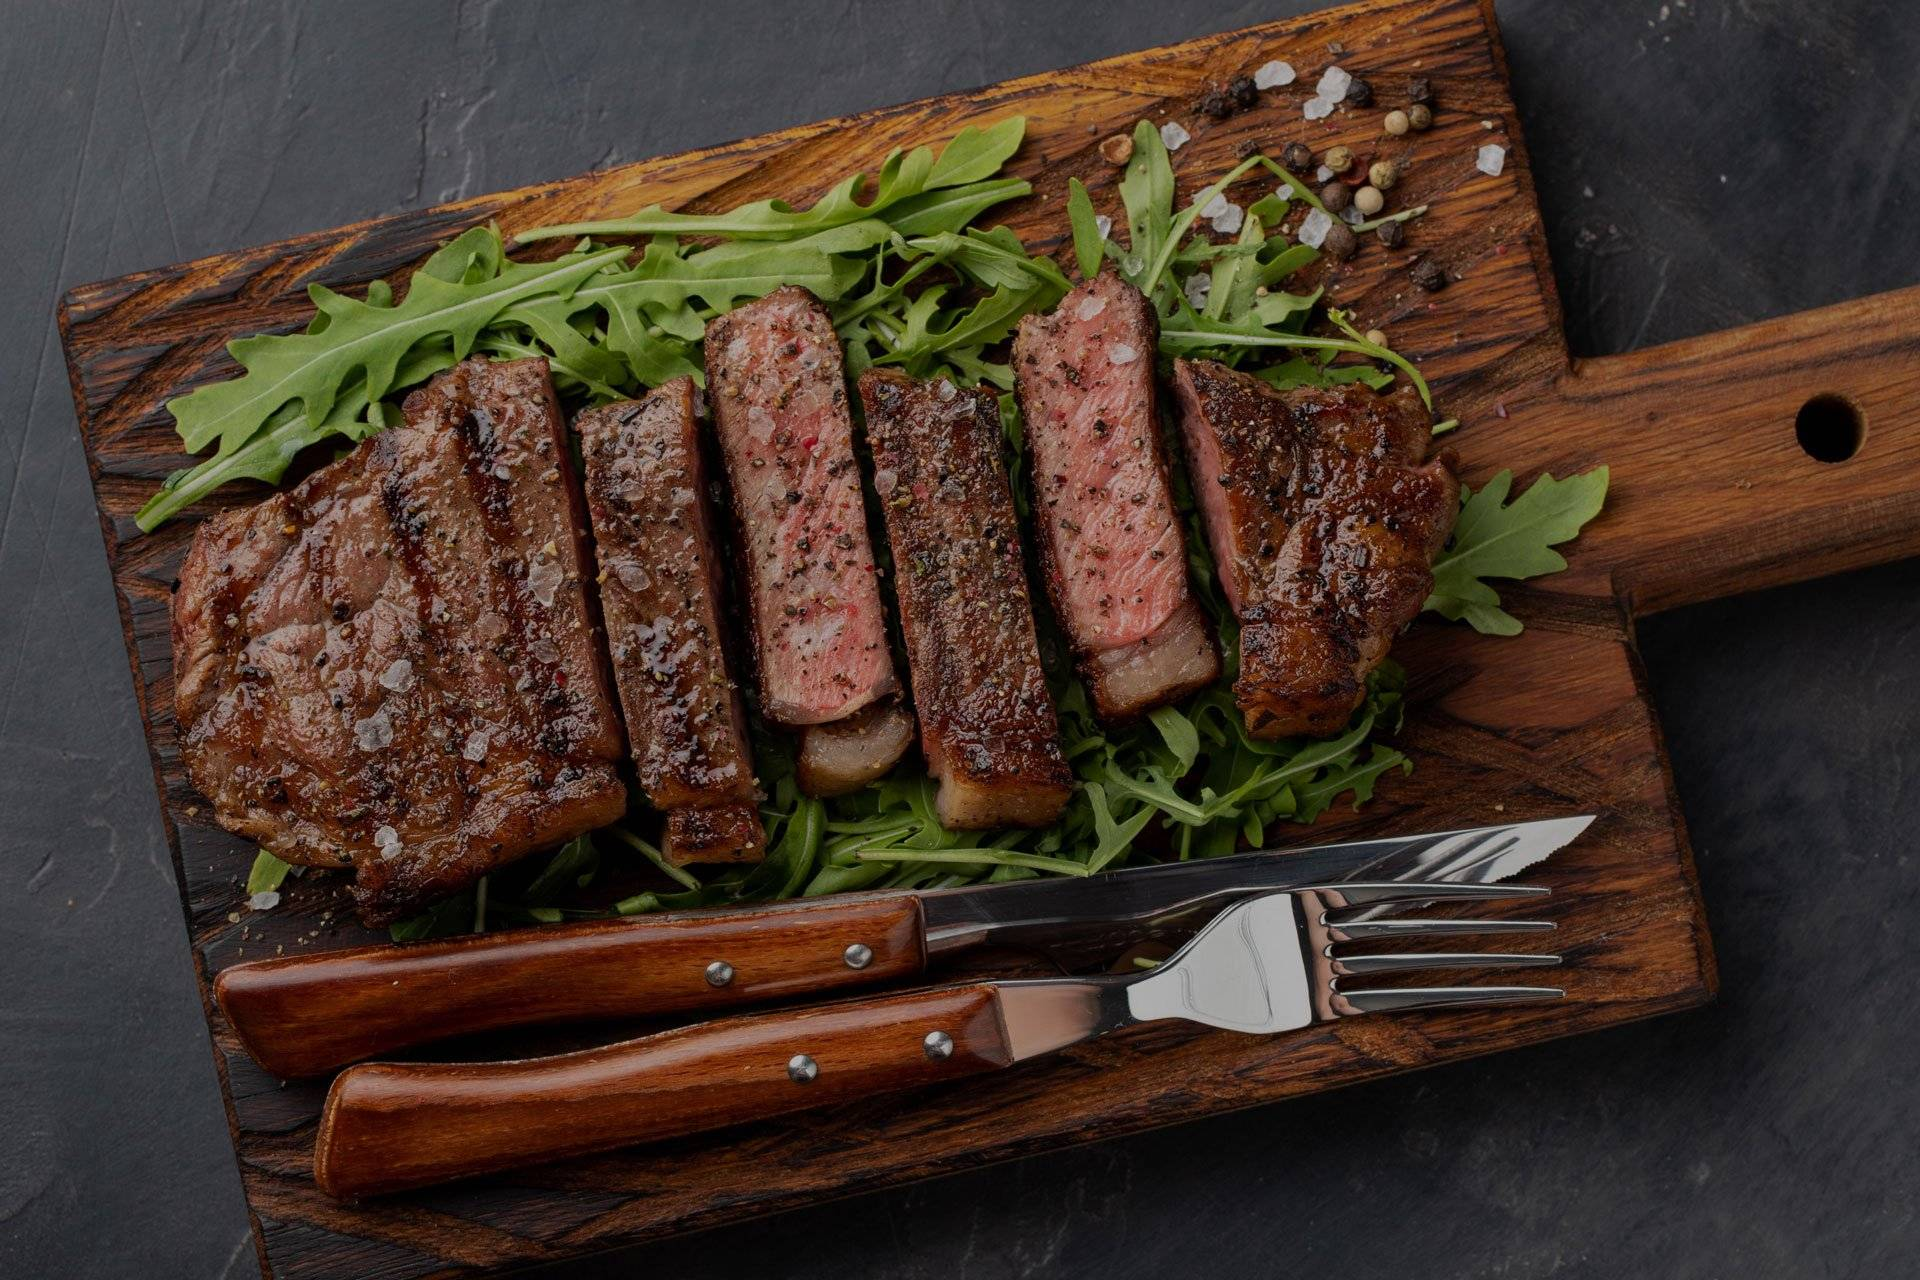 Fresh Never Frozen Beef Steak from Sanders Meats